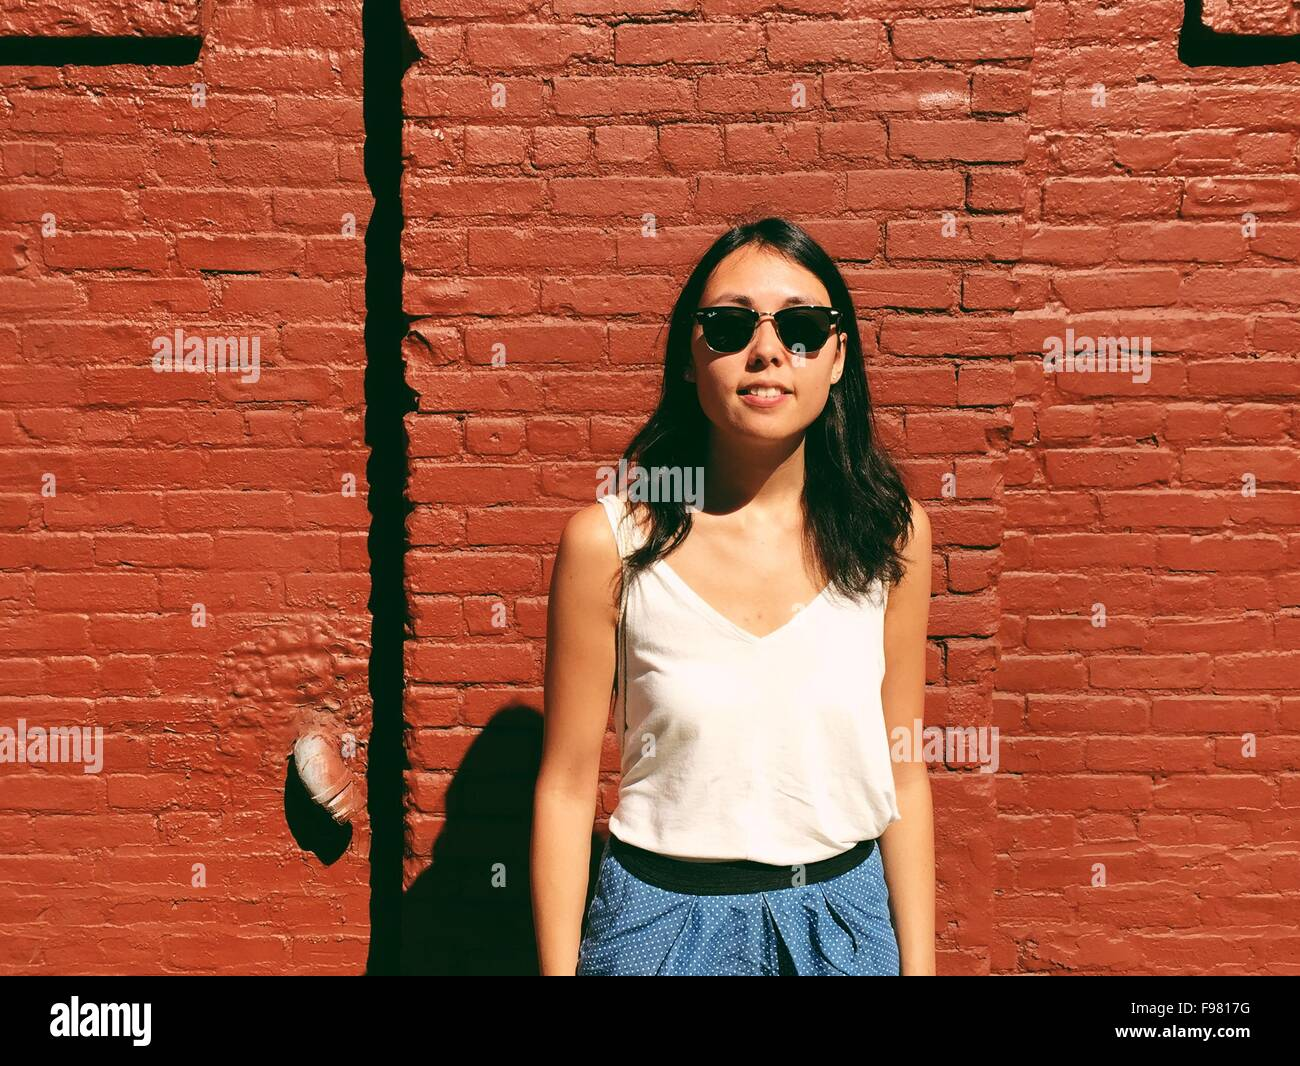 Portrait Of Beautiful Young Woman Standing Against Red Brick Wall - Stock Image